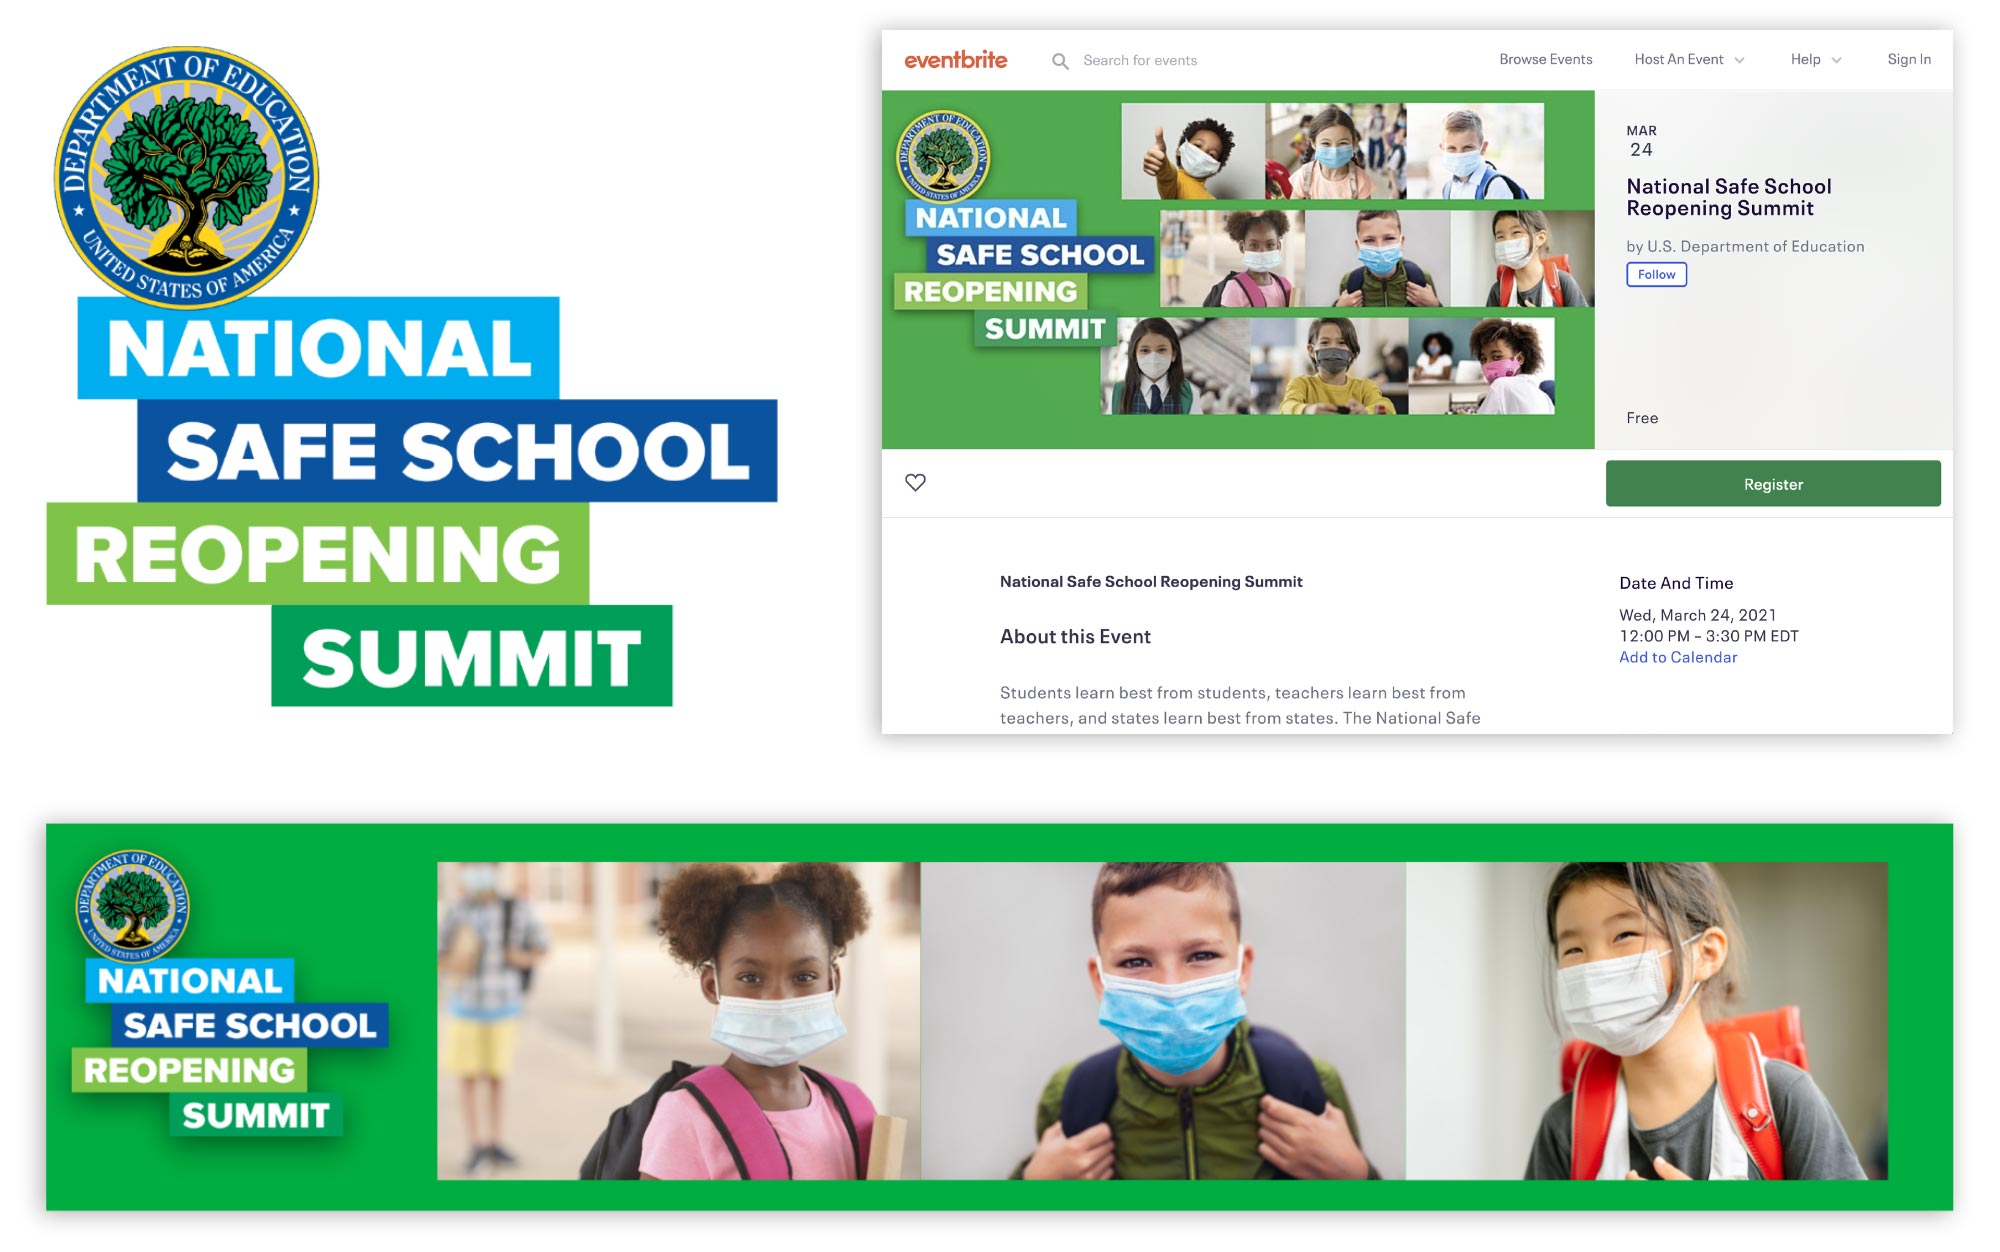 National Safe School Reopening Summit: Event identity, registration page and online header designs